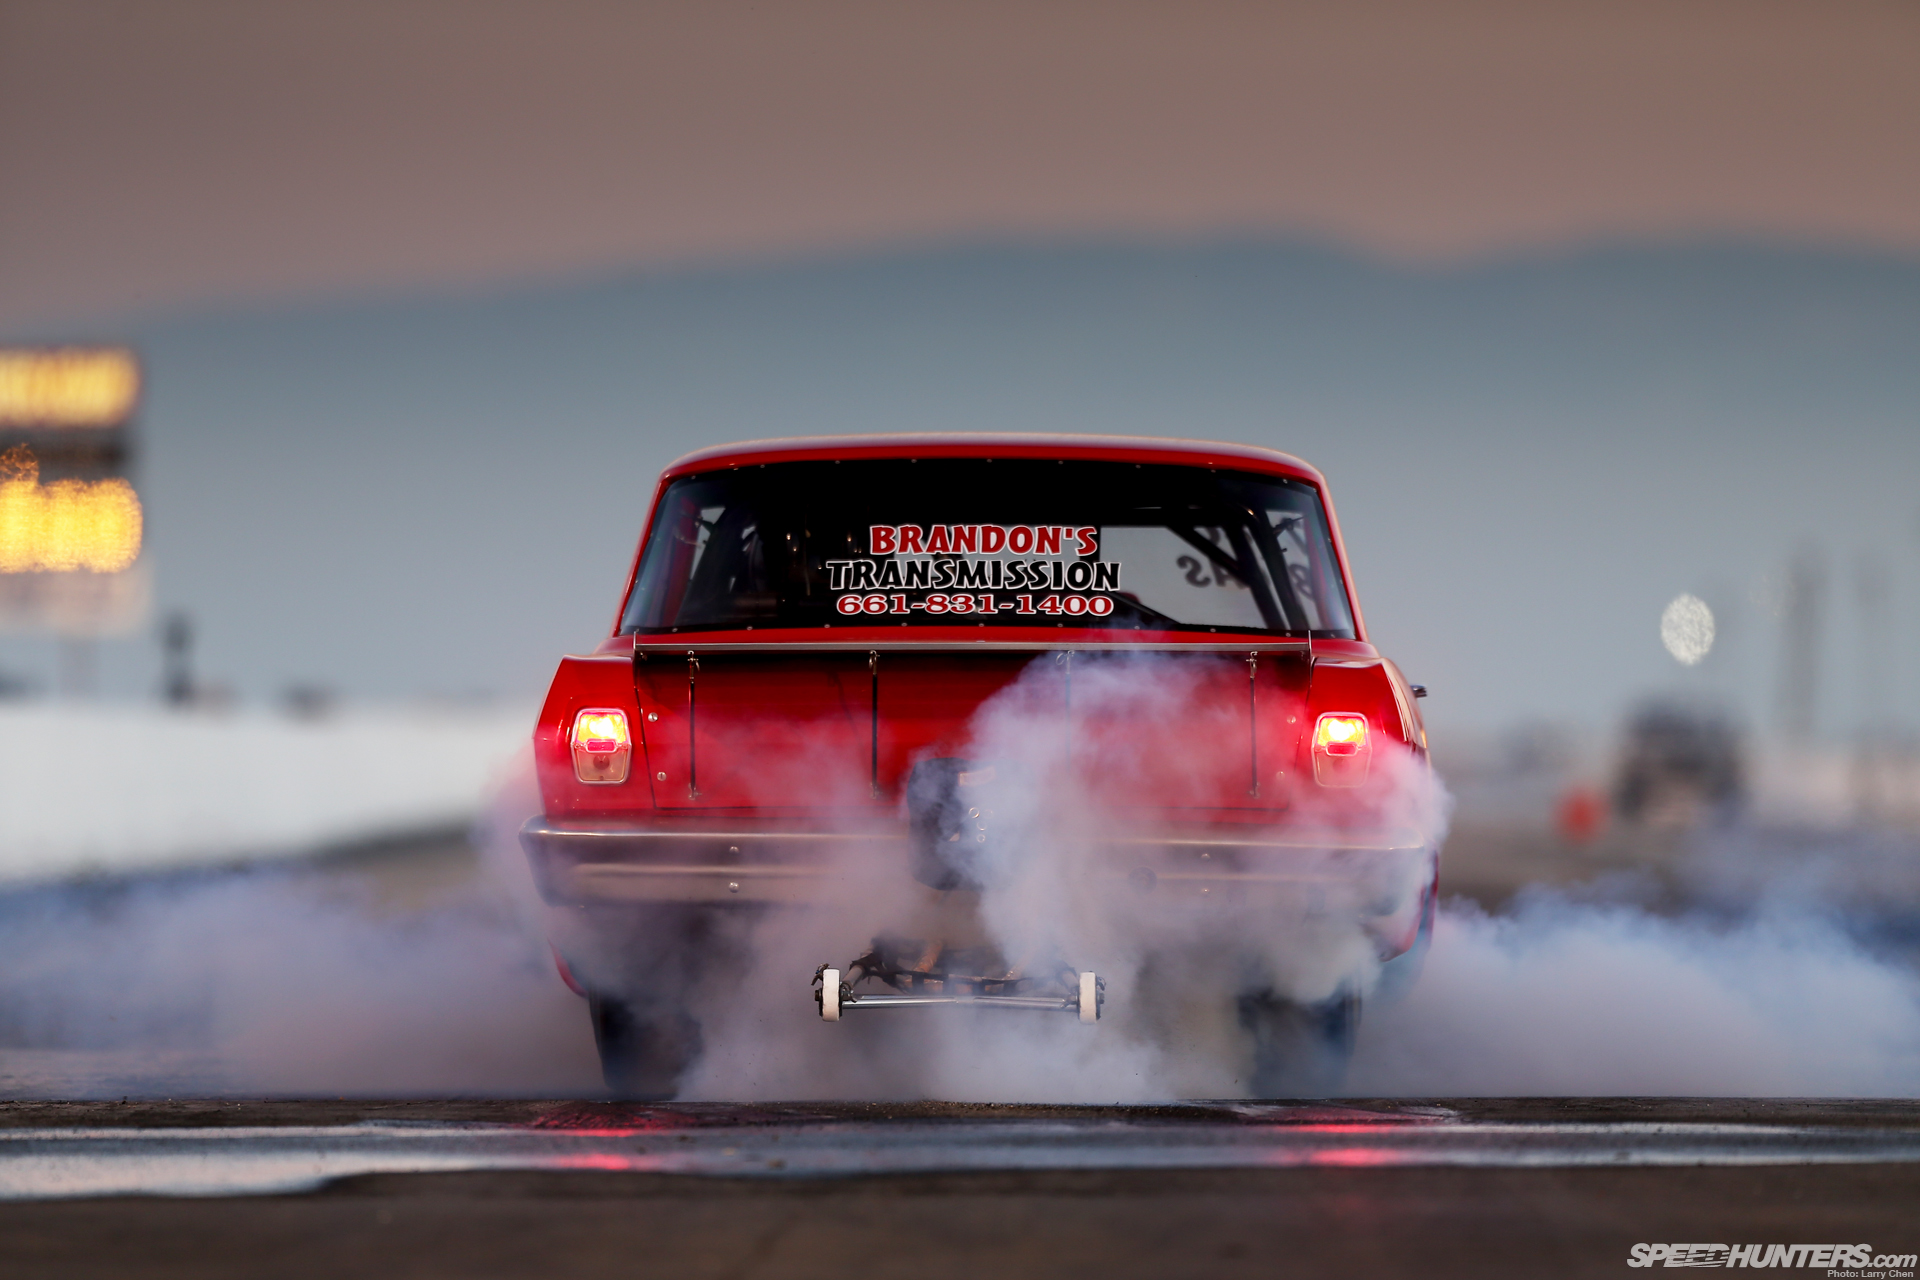 Drag Race Race Car Burnout Smoke Drag Strip chevrolet hot rods muscle track